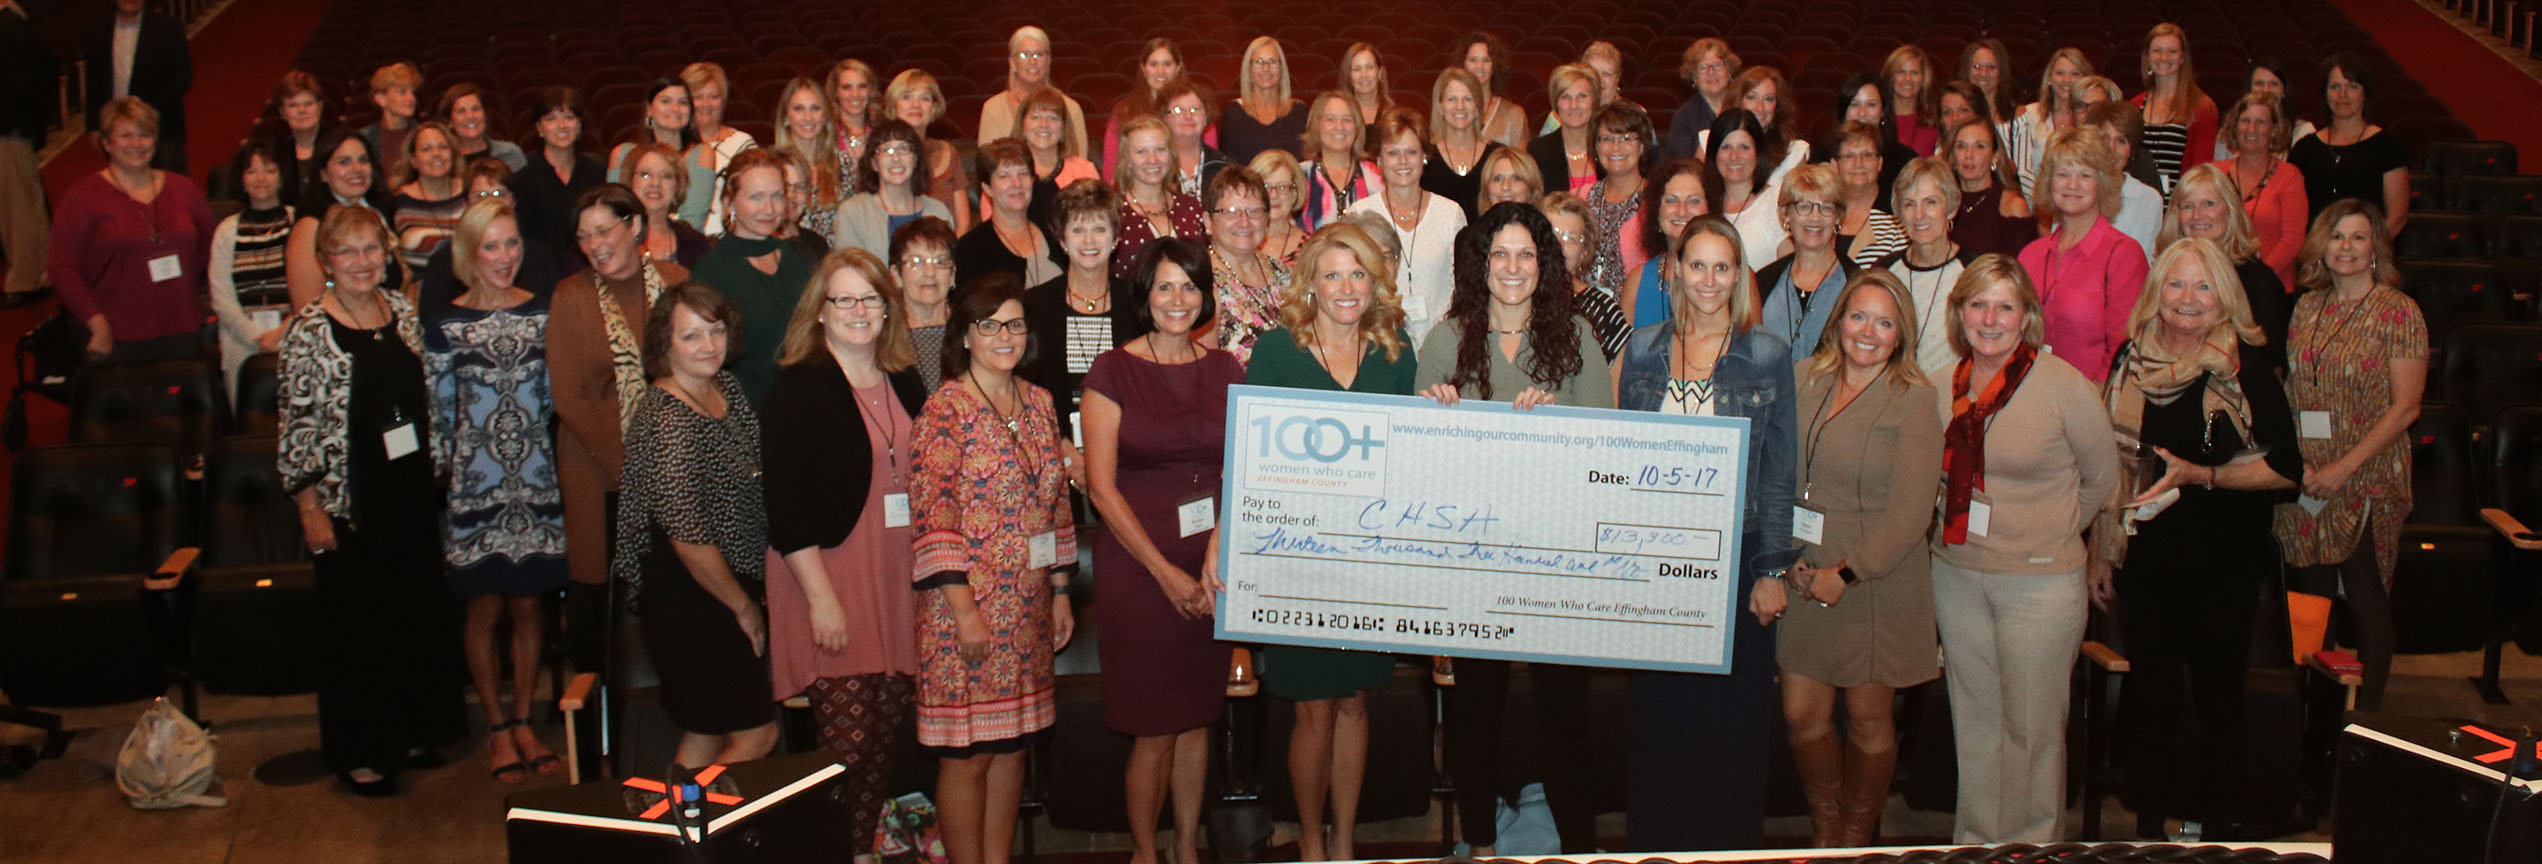 100+ Women Who Care Effingham County Contributes $13,200 to CASA of Effingham County